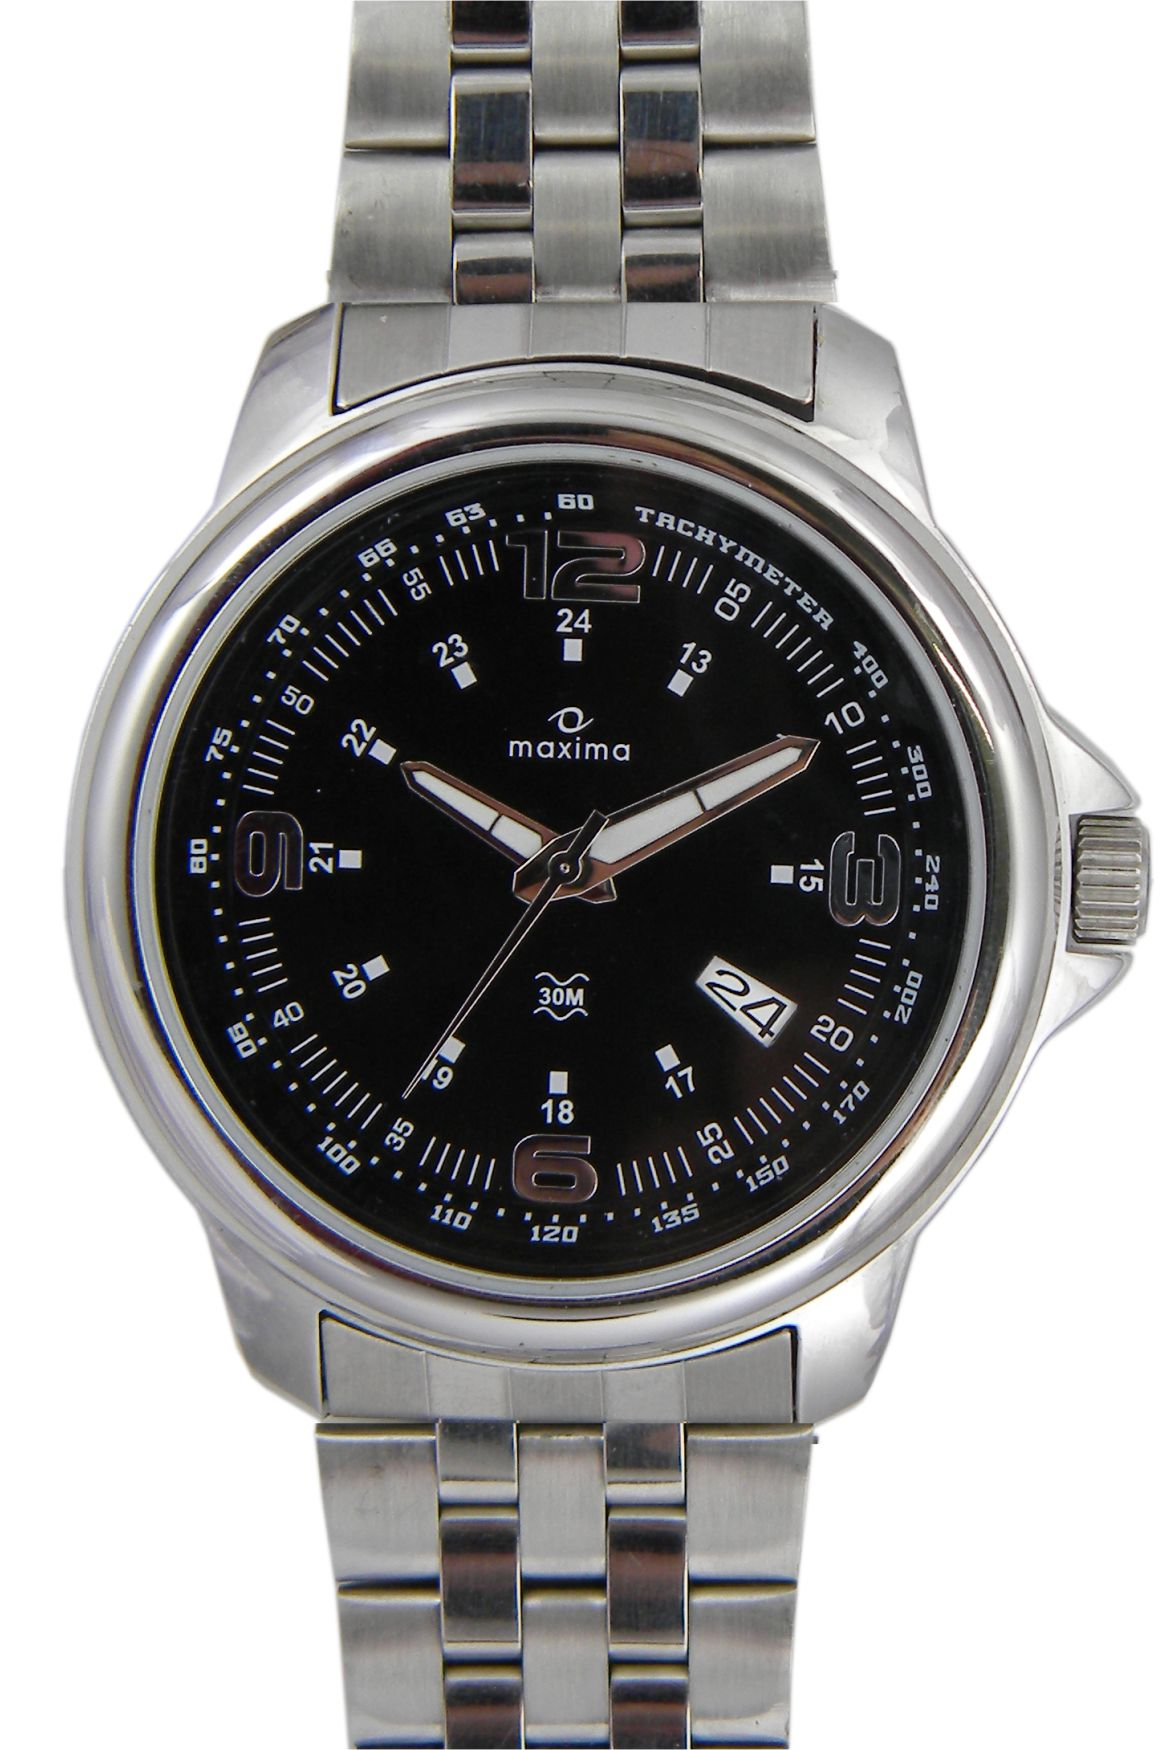 for analog watch best list buy india maxima price men watches online at brown brands original in